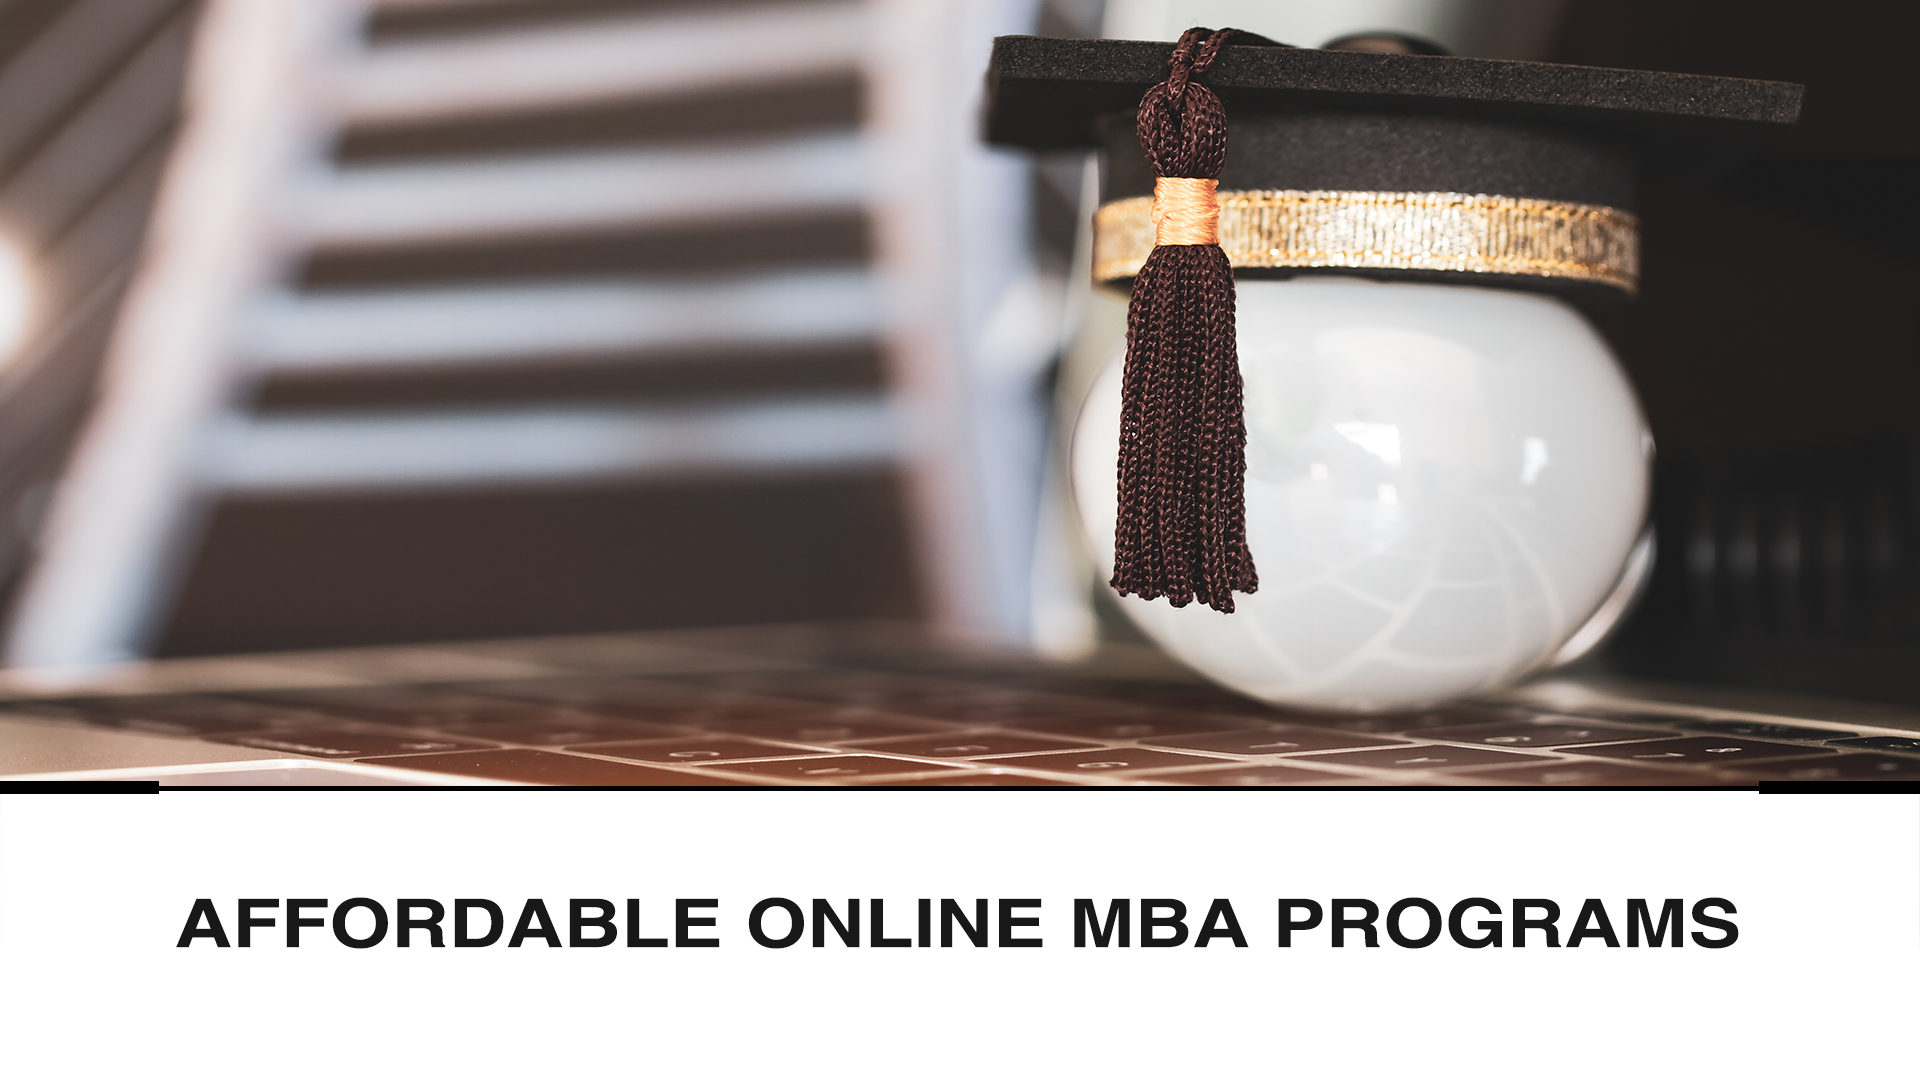 The 5 Most Affordable Online MBA Programs 2021